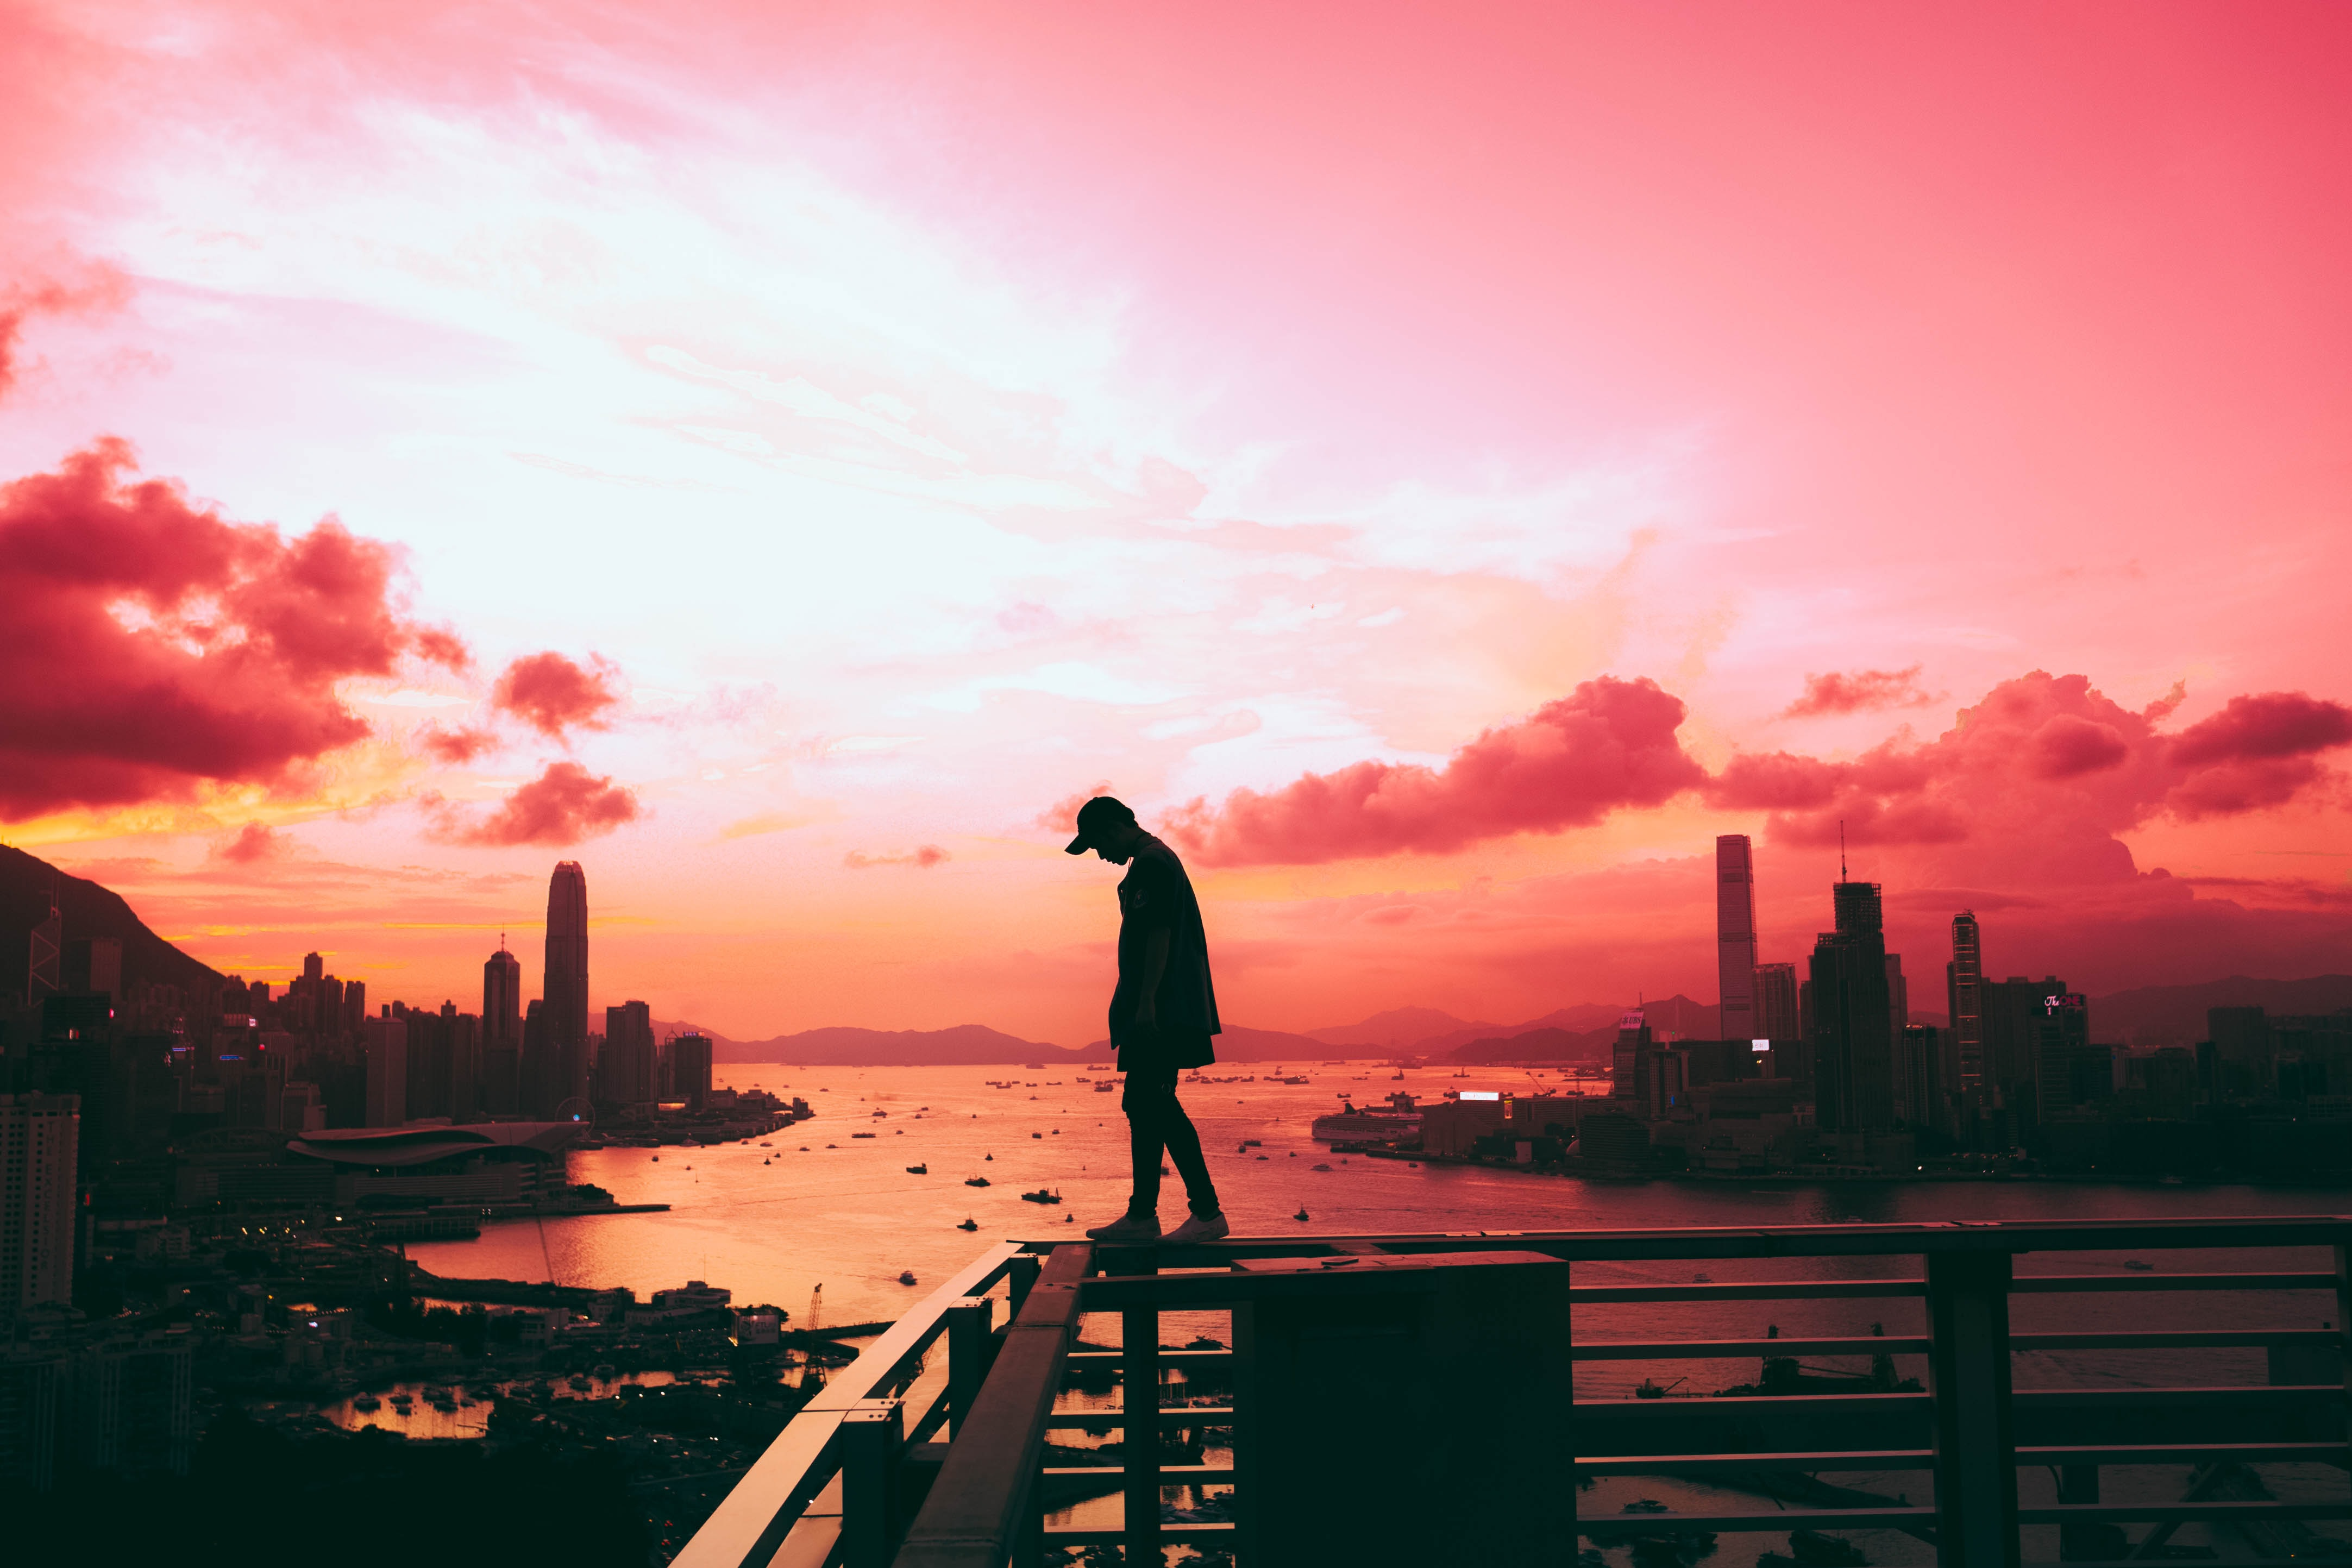 silhouette of person standing on railing